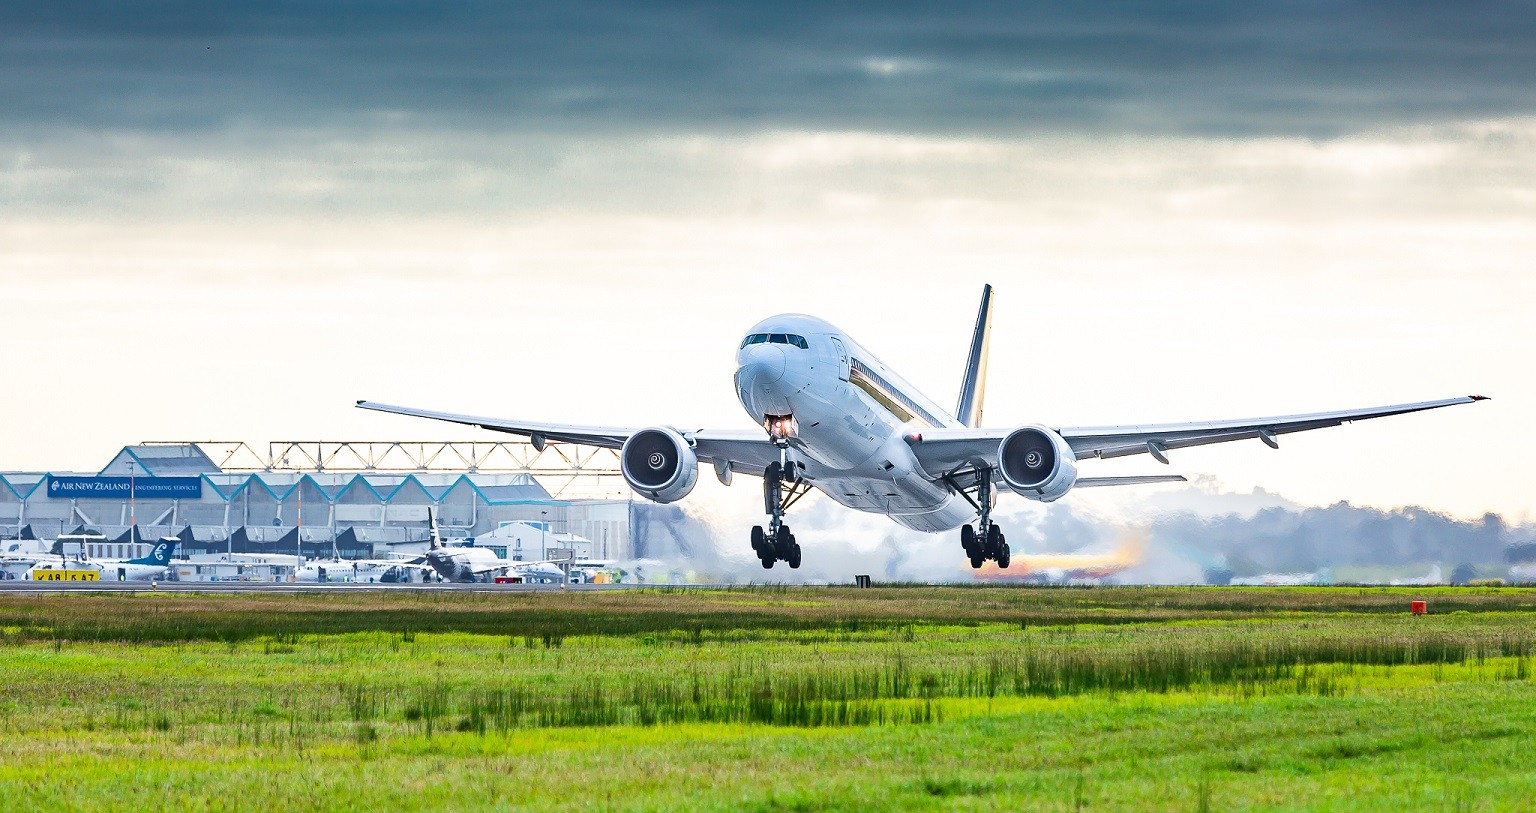 An image of a large passenger plane landing in NZ.